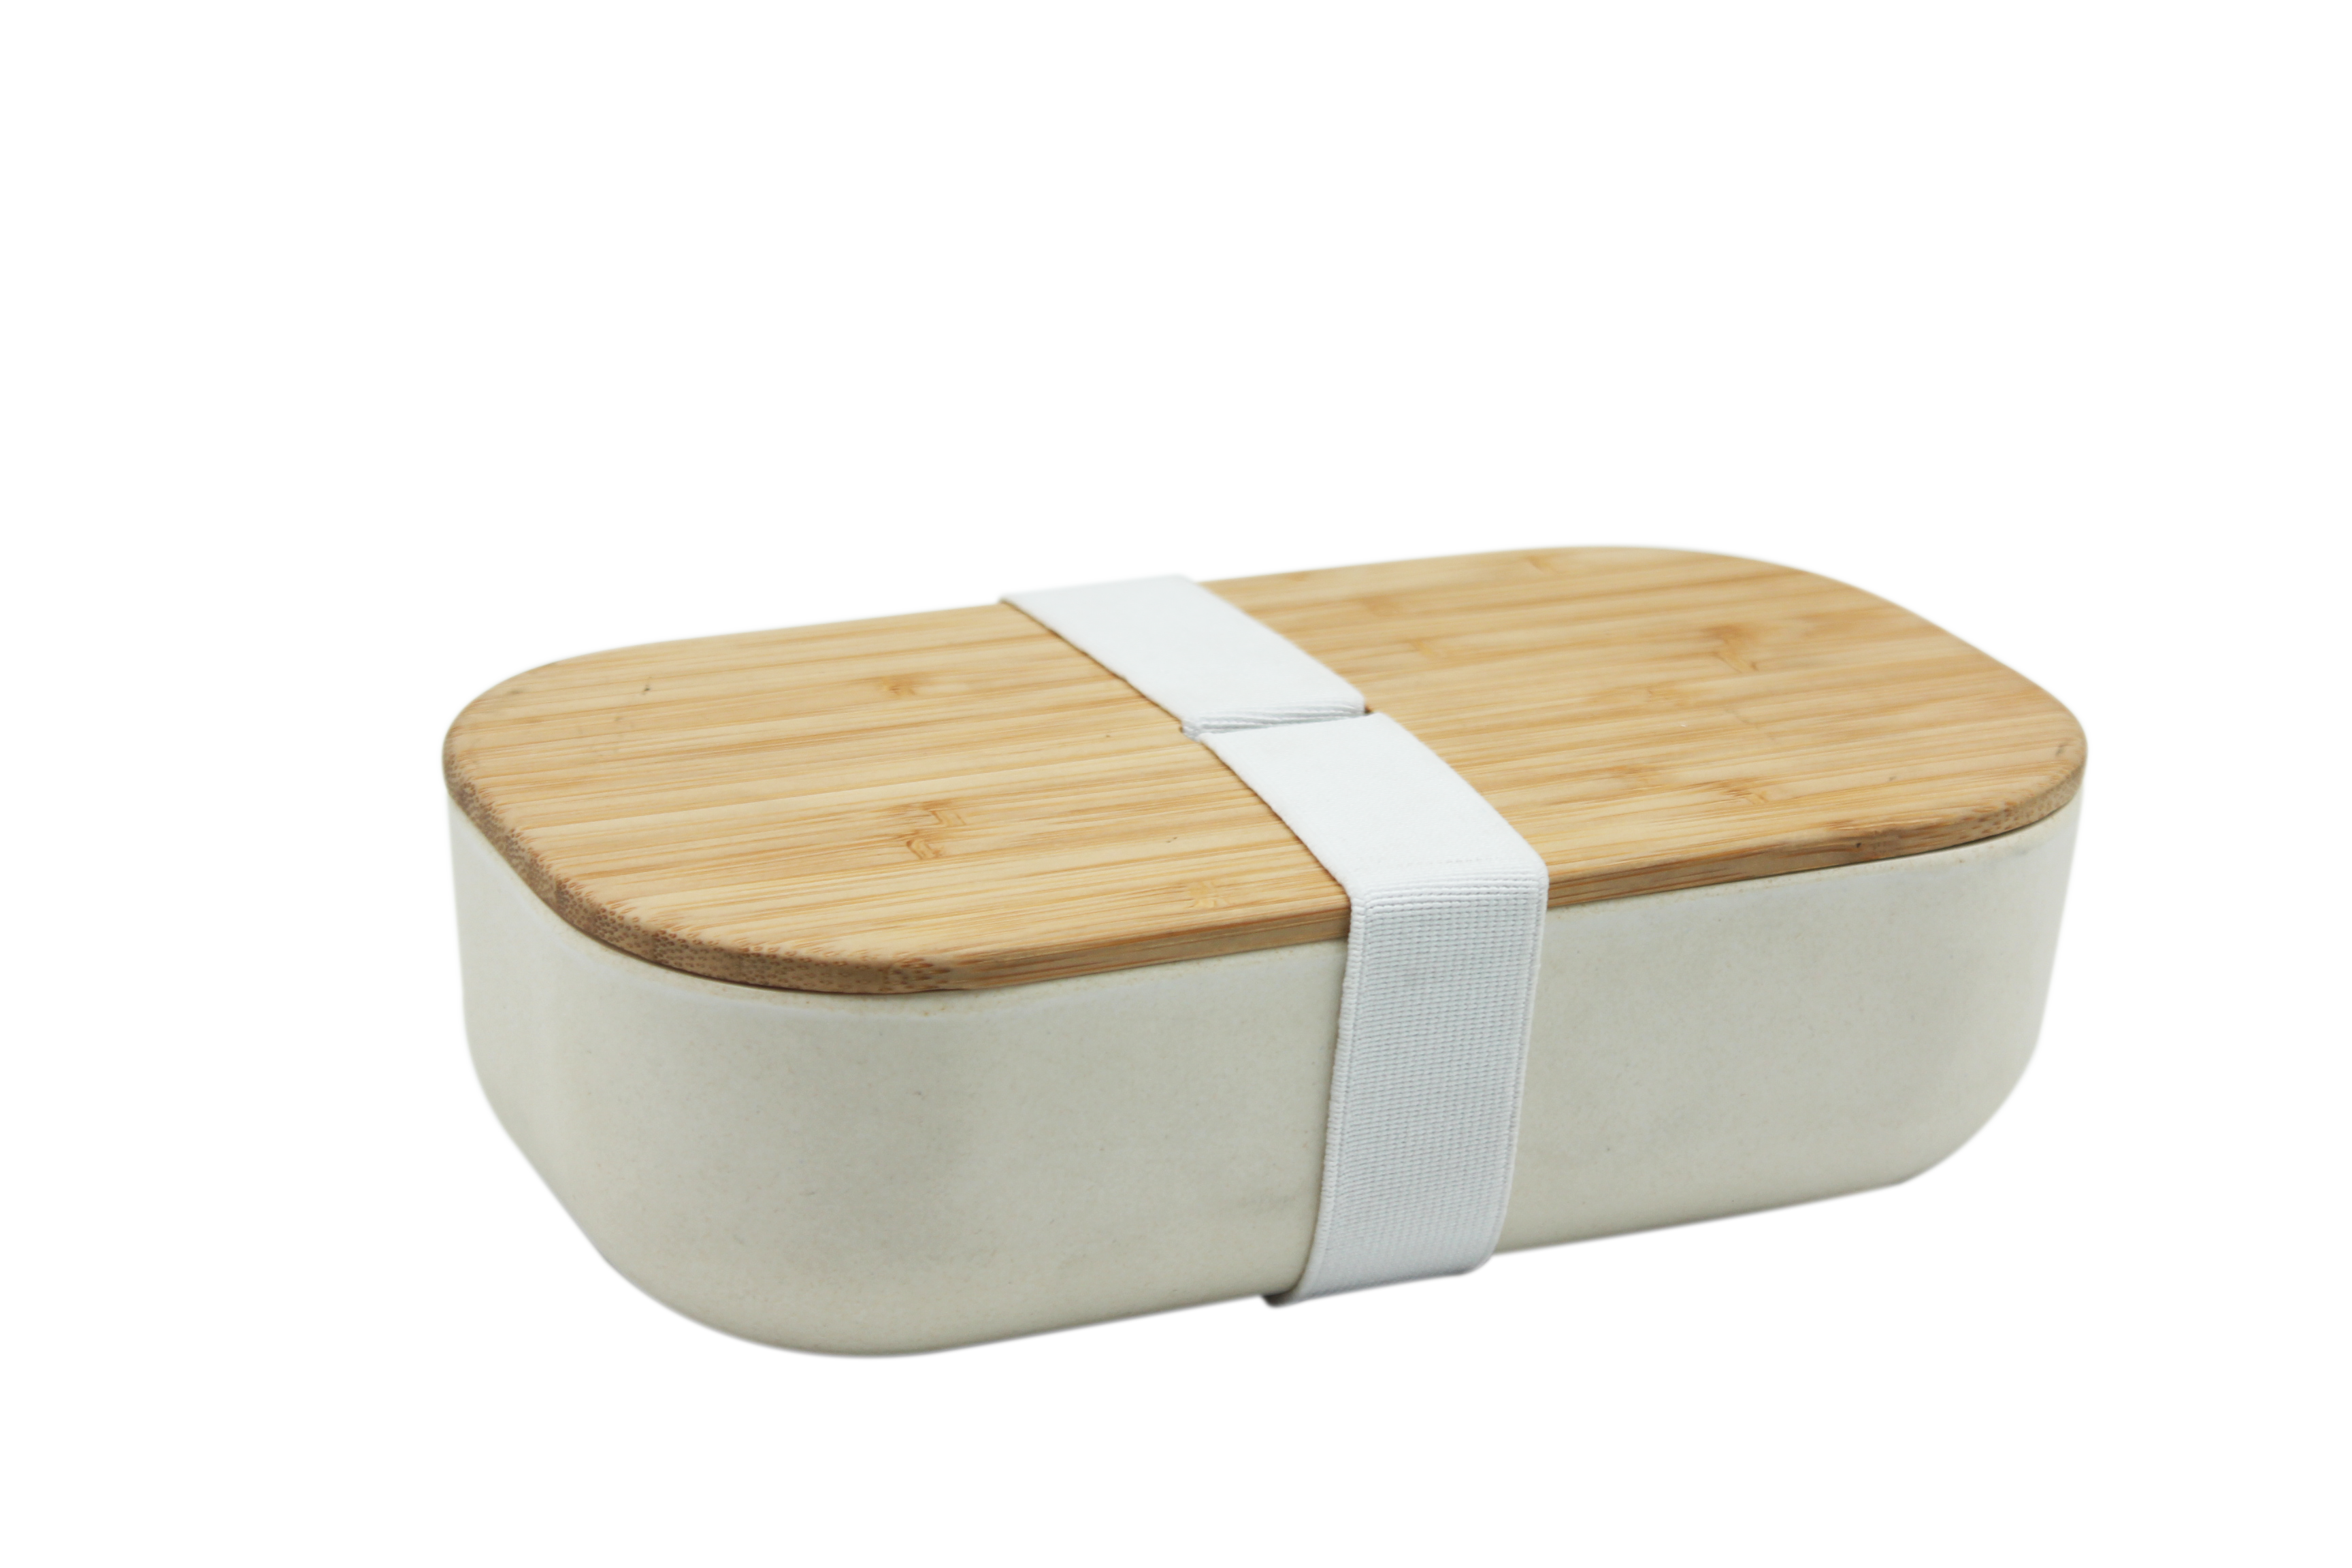 Eco Lunch Box Made Of Bamboo Fibre And Corn Starch No Damage To Our Environment While Enjoy The Meal Please Eco Lunch Boxes Lunch Box Biodegradable Products